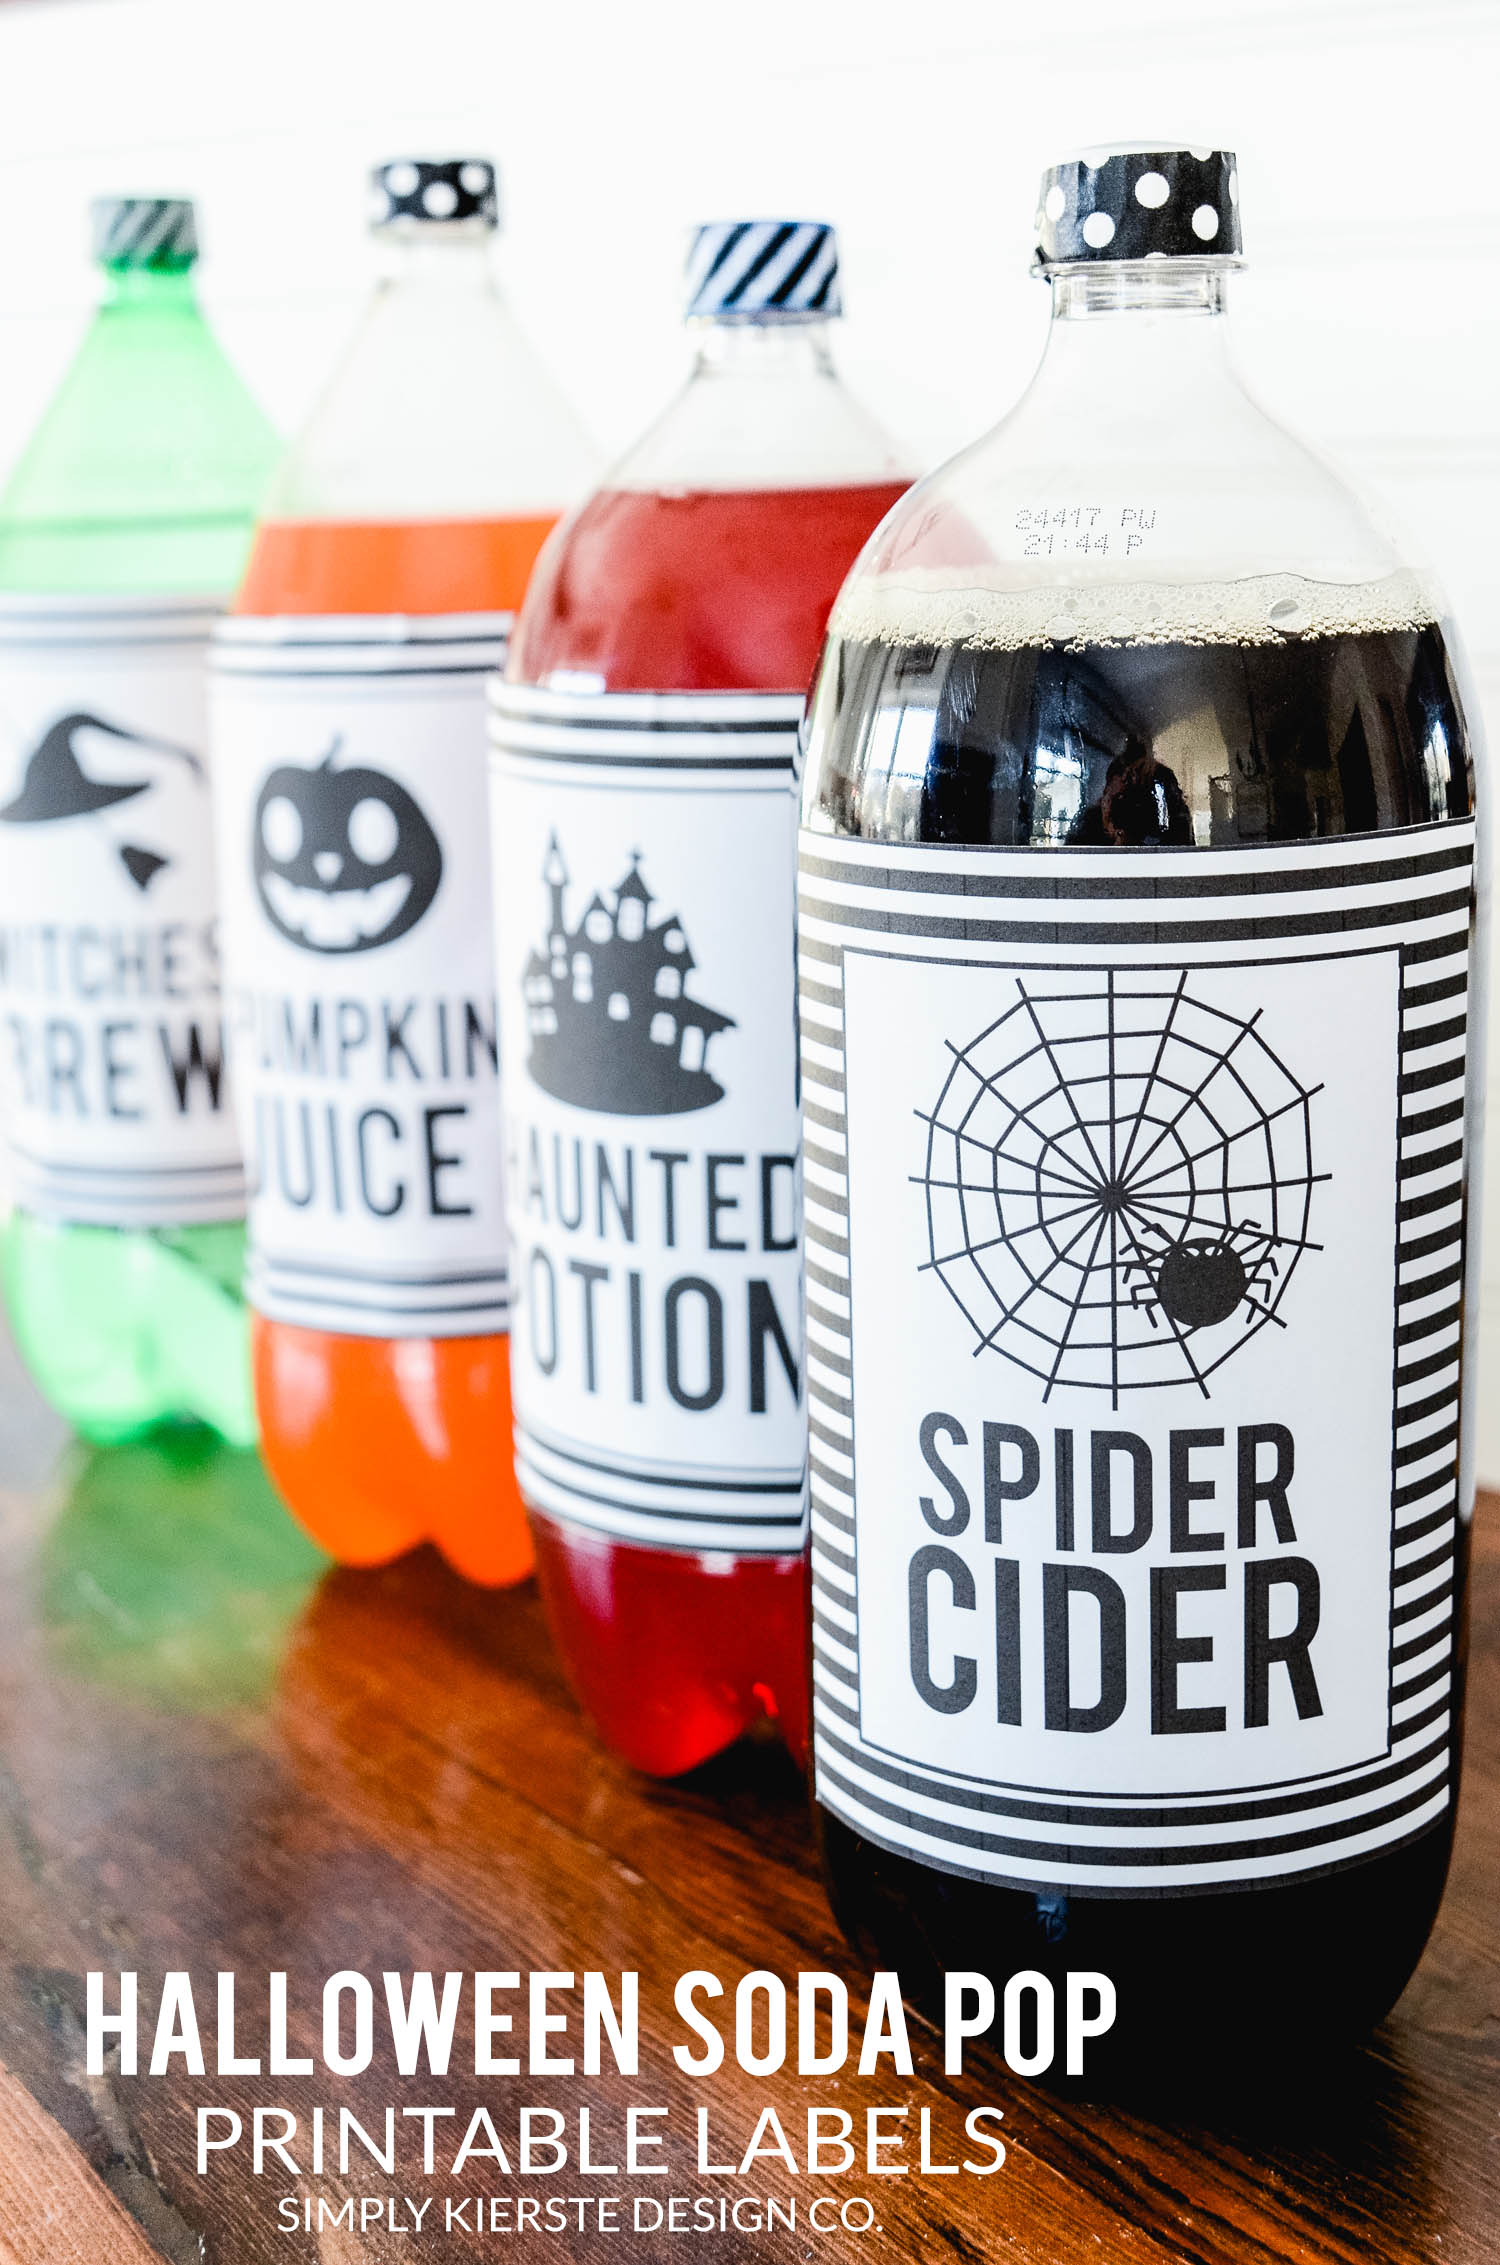 Halloween Soda Pop Labels | Free Printable | Easy Halloween Ideas | oldsaltfarm.com #halloween #easyhalloweenideas #halloweenprintables #halloweenpartyideas